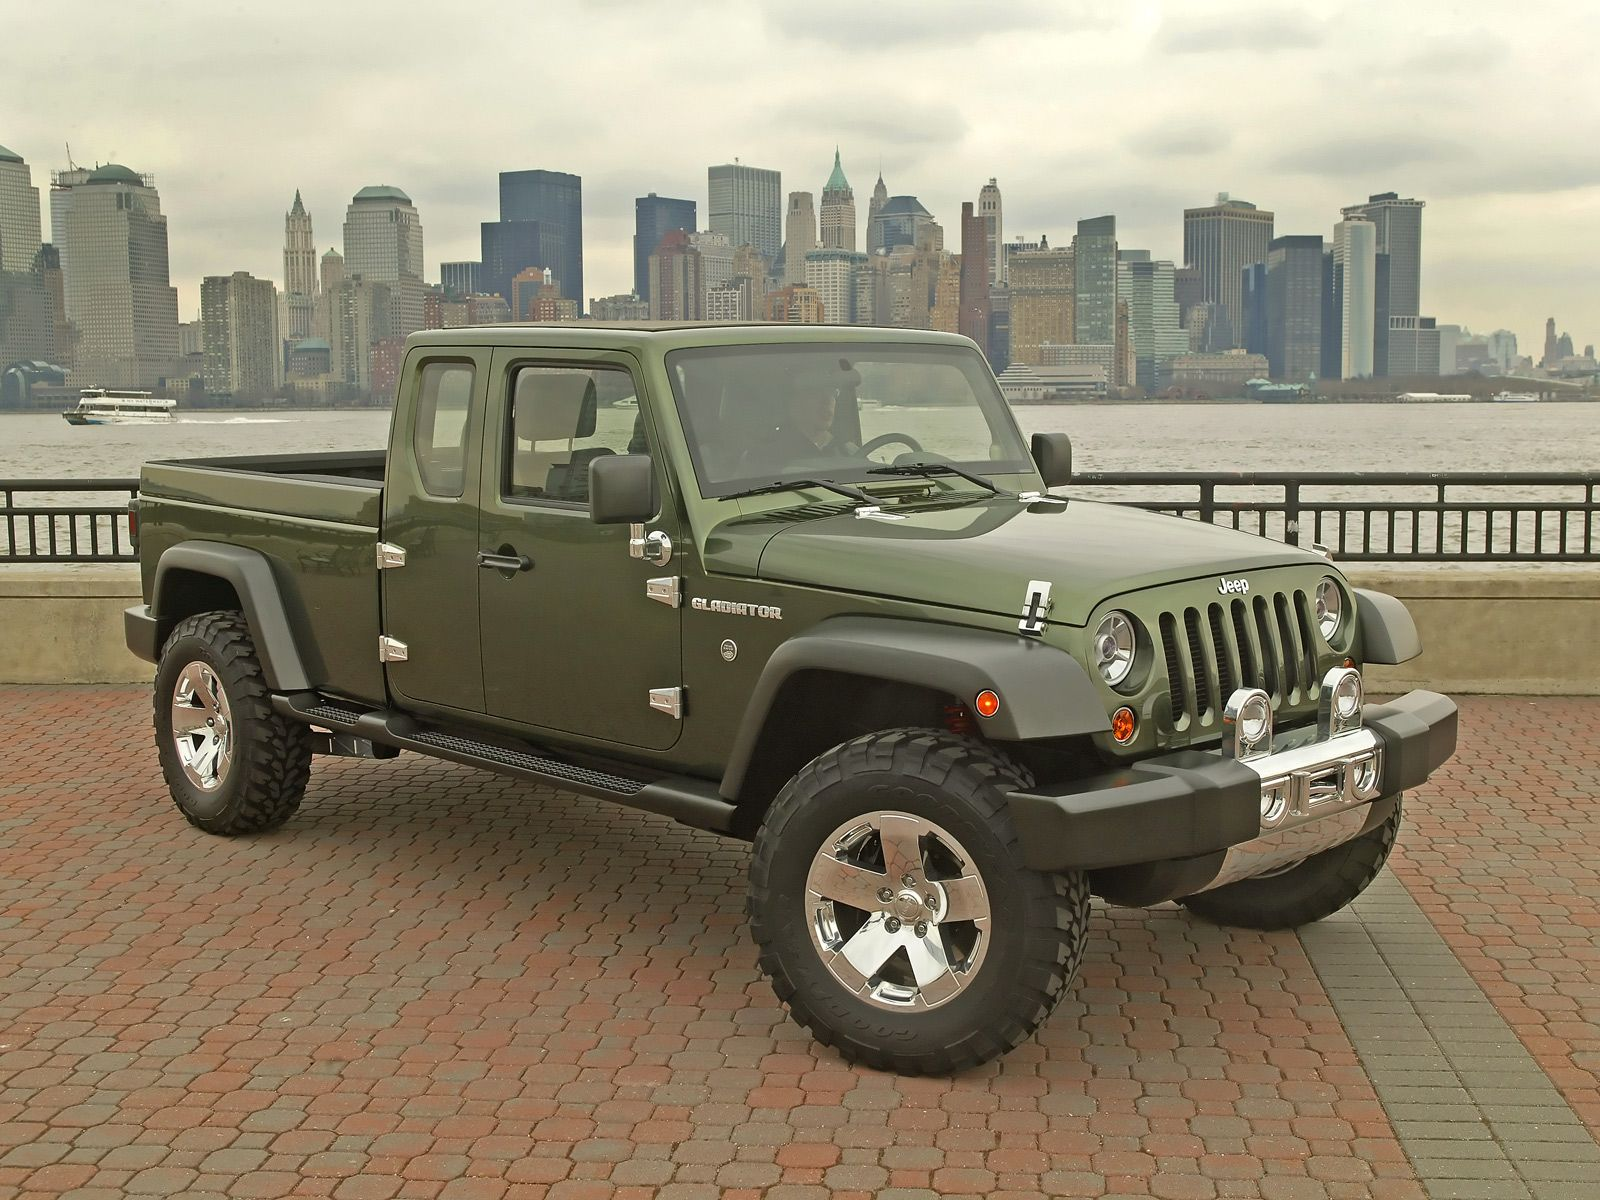 2015 Jeep Gladiator Front View Jeep Pinterest Jeep Jeep